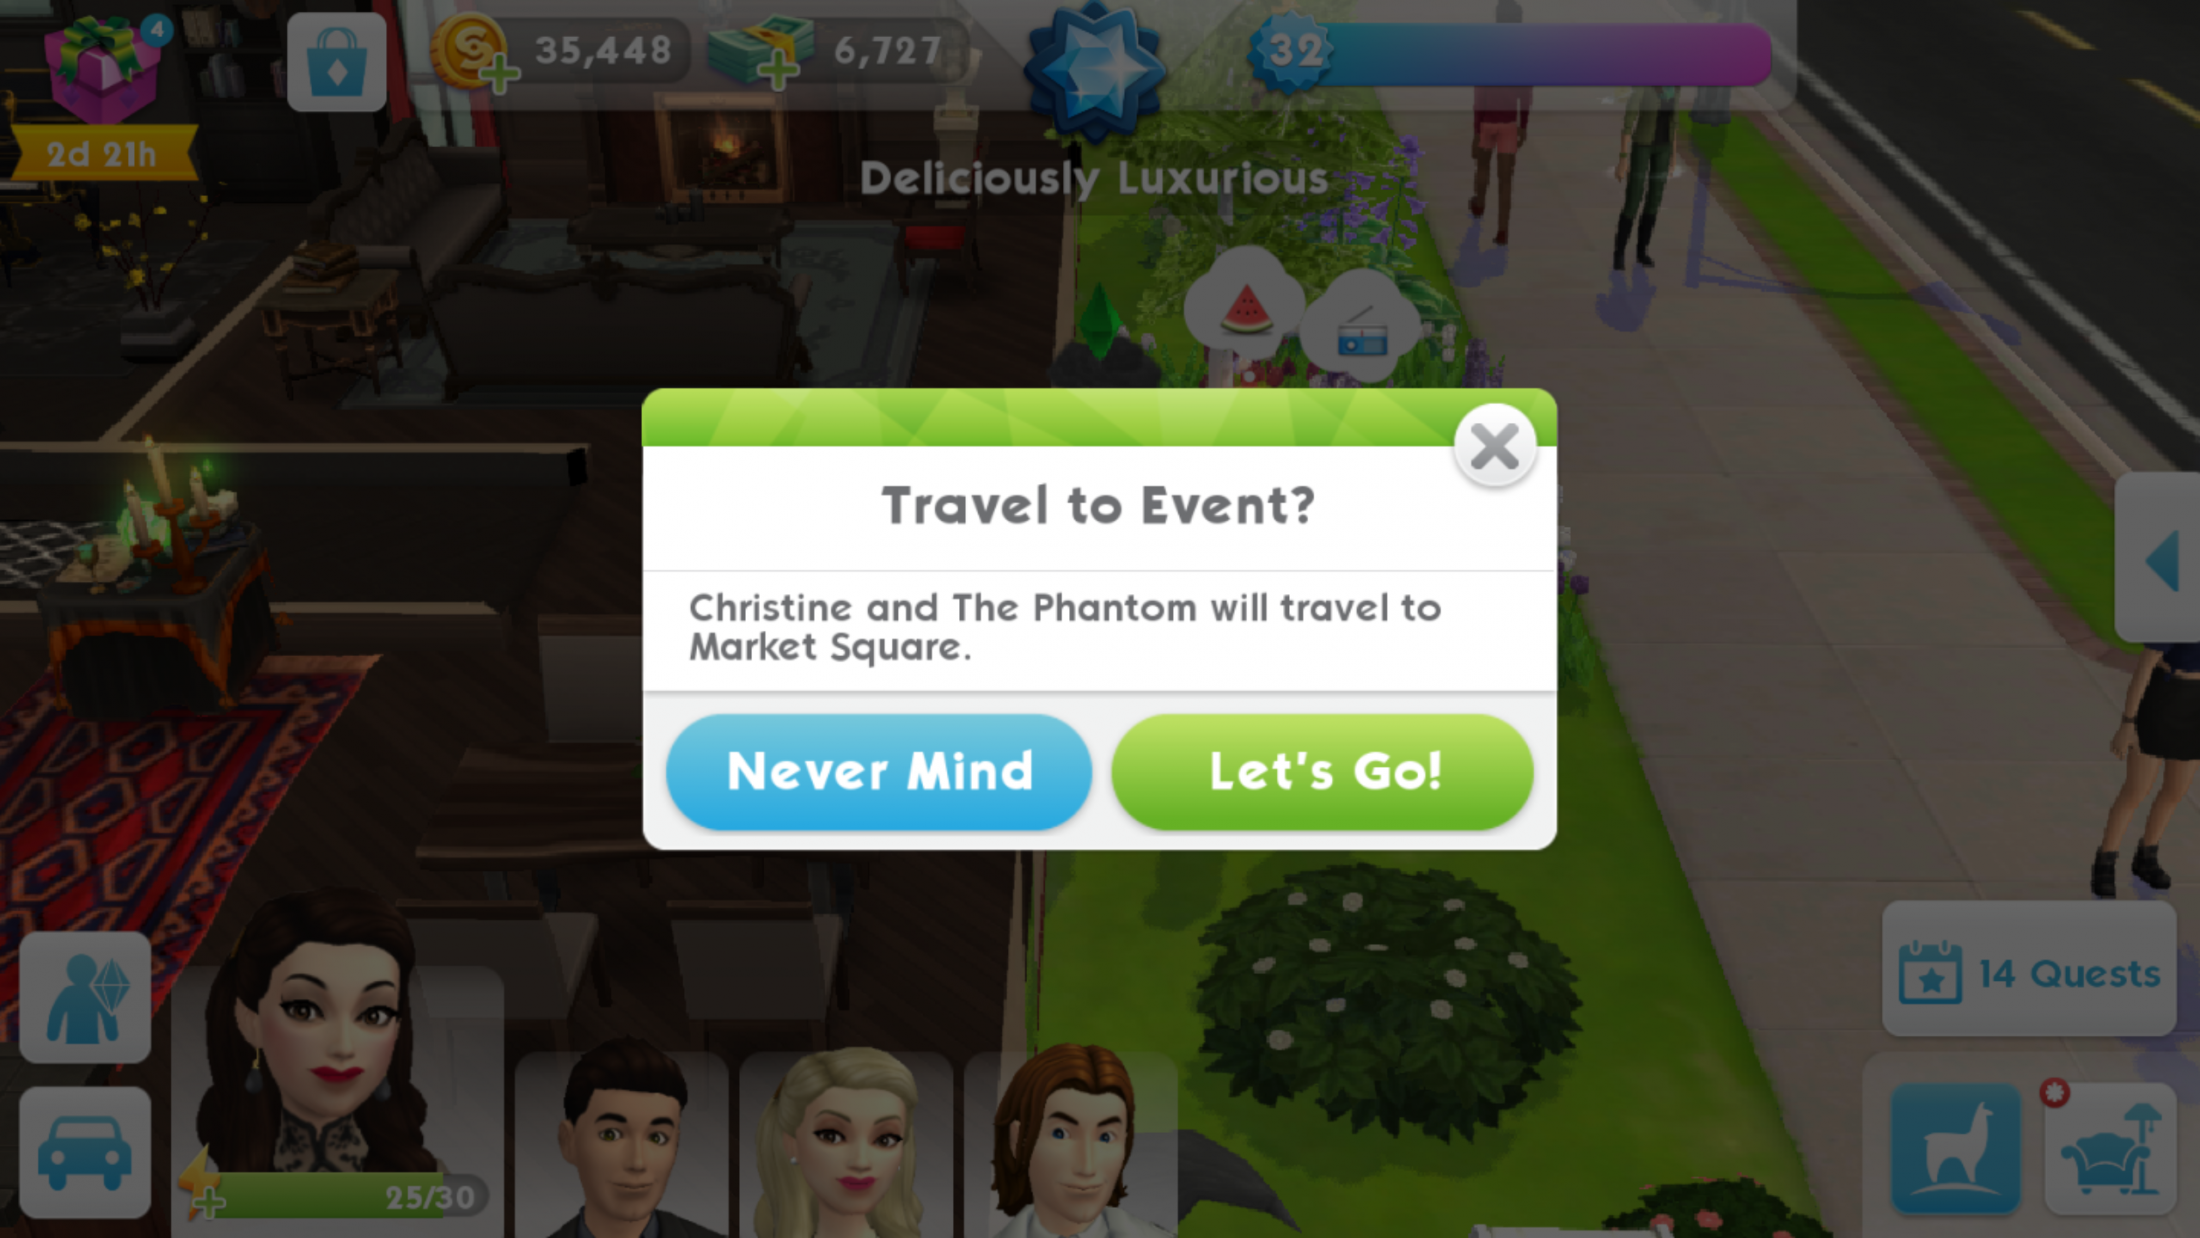 17 Step 6 - Traval To Event